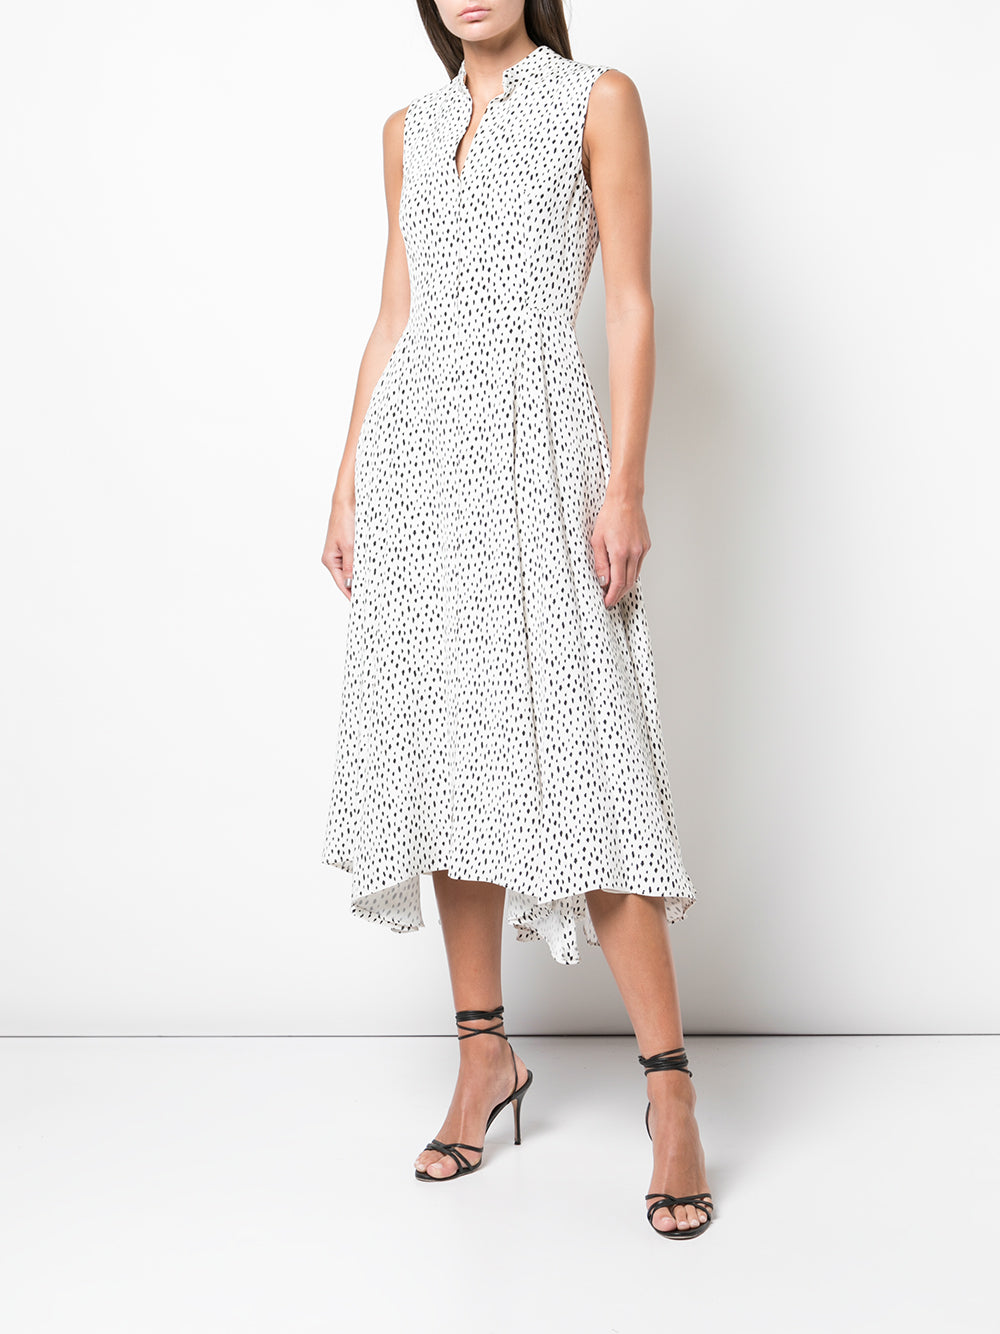 SLEEVELESS DRESS IN PRINTED CREPE